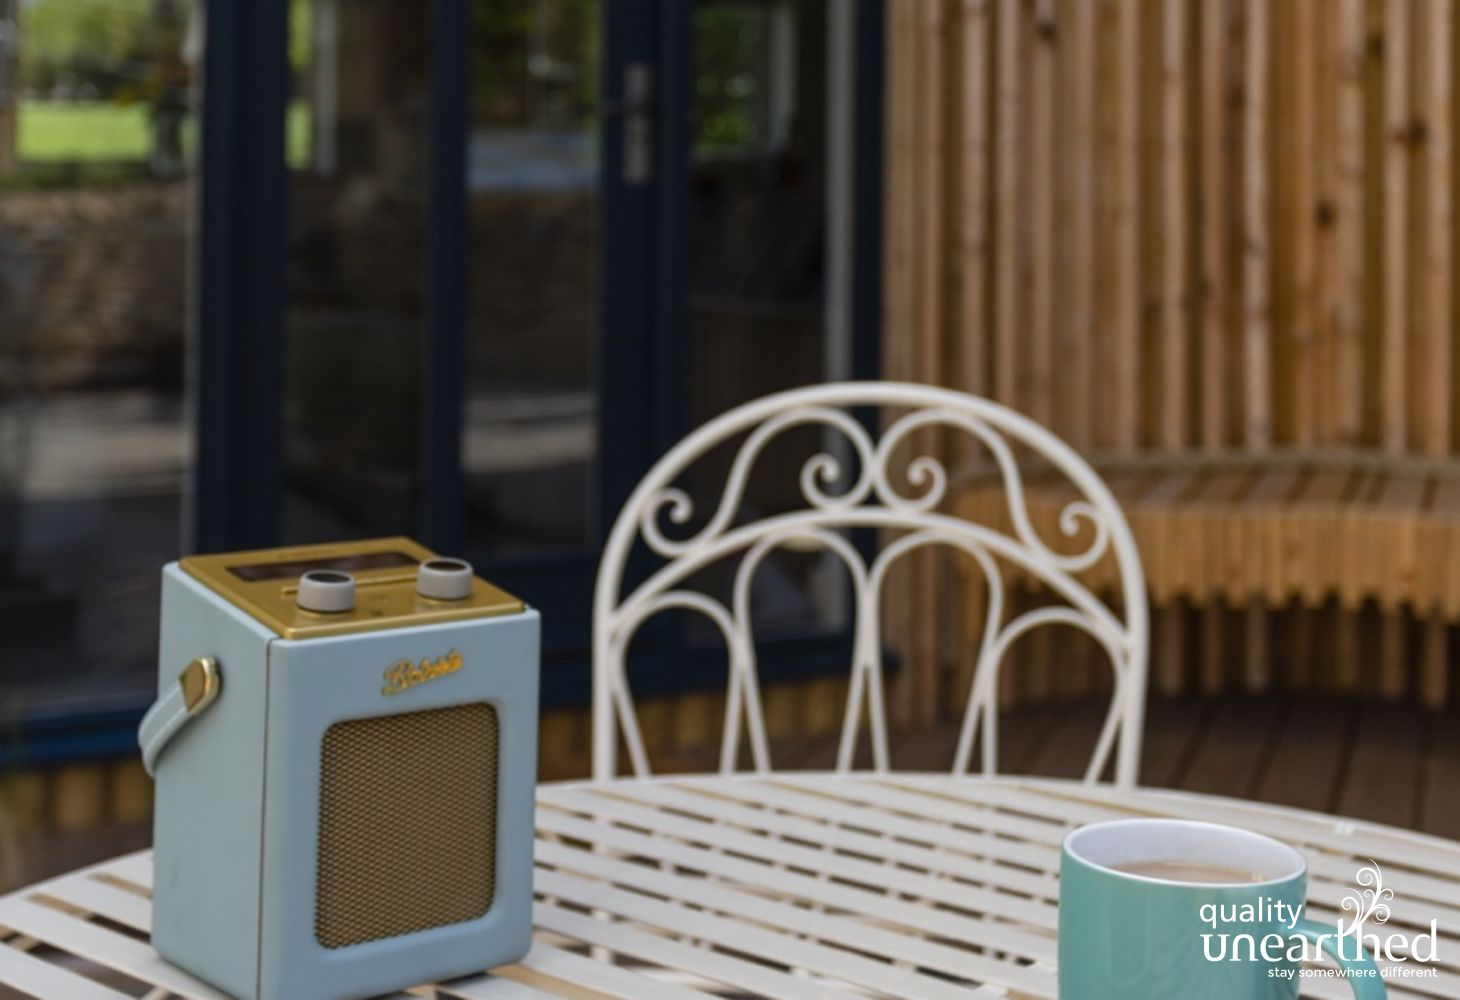 A Roberts radio sits on a French style outdoors table with coffee and pastries, right outside the contemporary wooden lodge